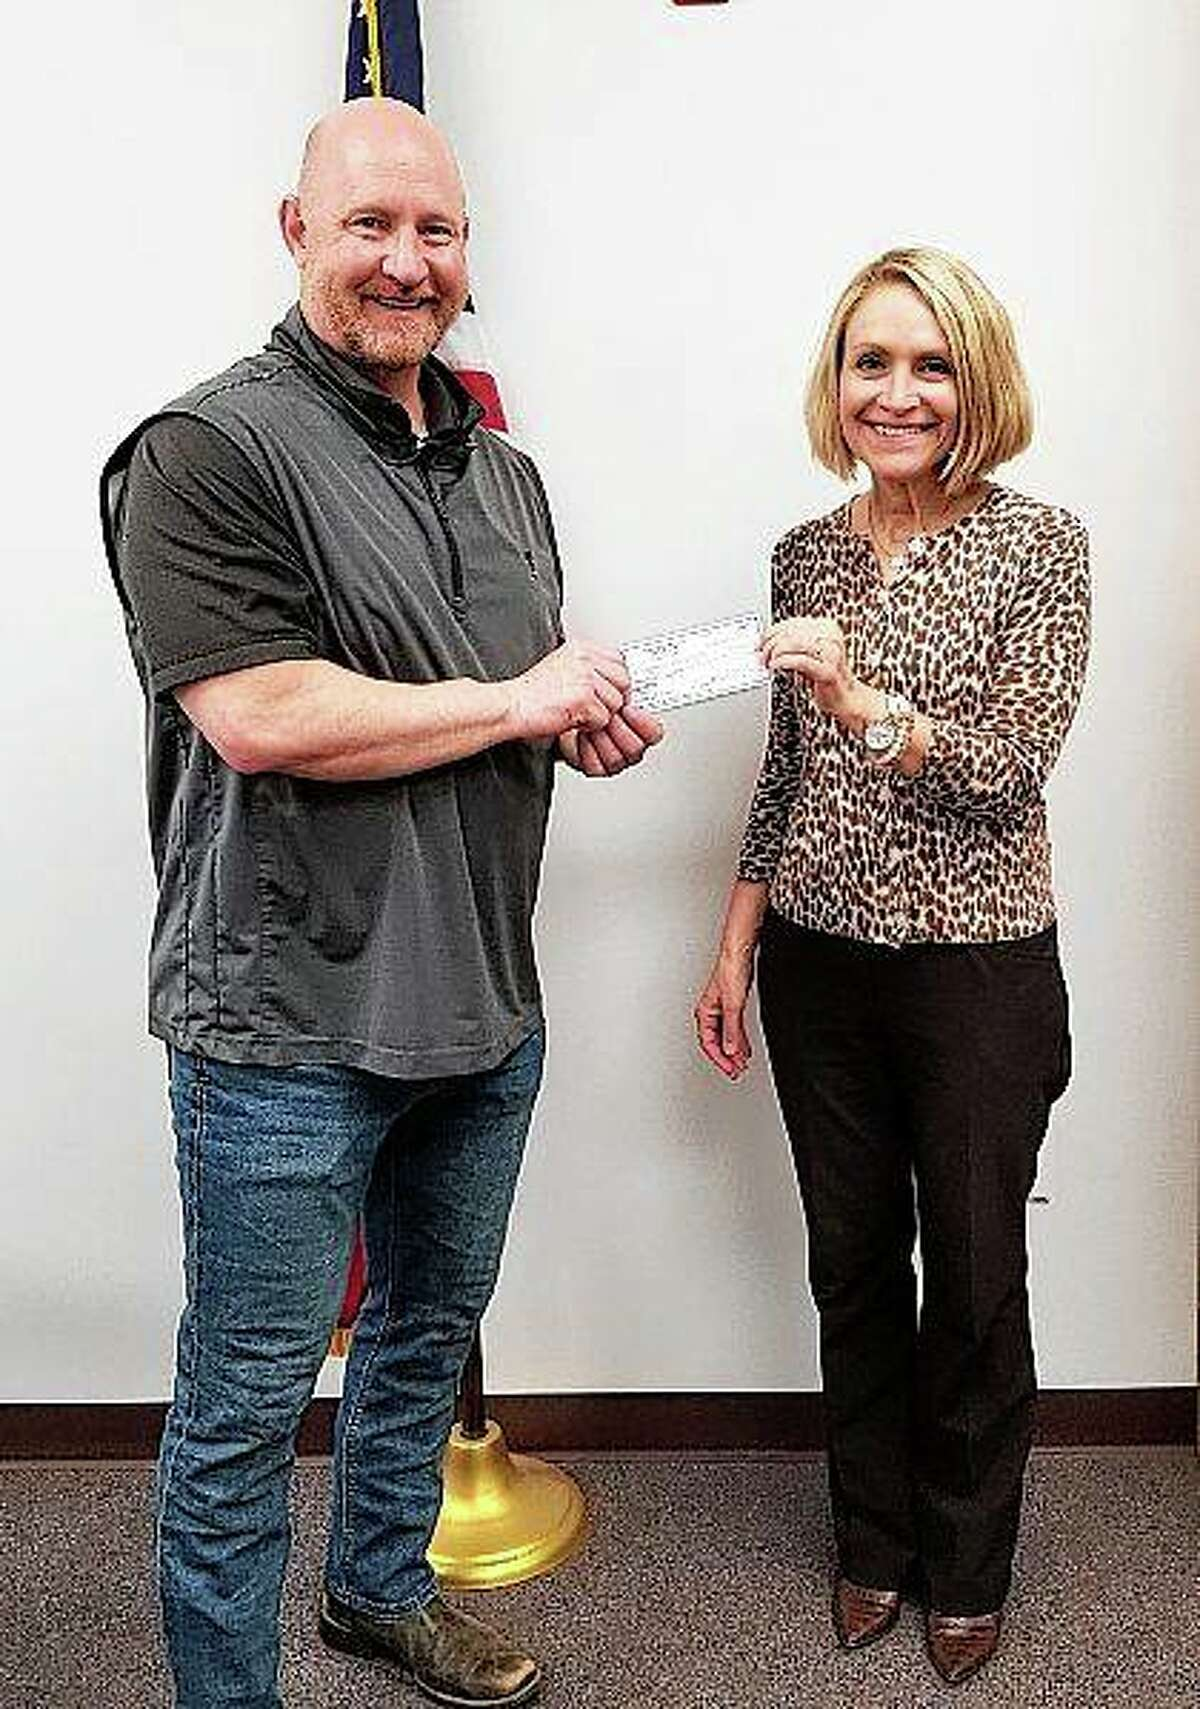 Rotary Club of Pike County President Sheila Davidsmeyer presents a check to Griggsville-Perry schools Superintendent Kent Hawley. The money was designated for the district's personal protective equipment purchases amid the COVID-19 pandemic.